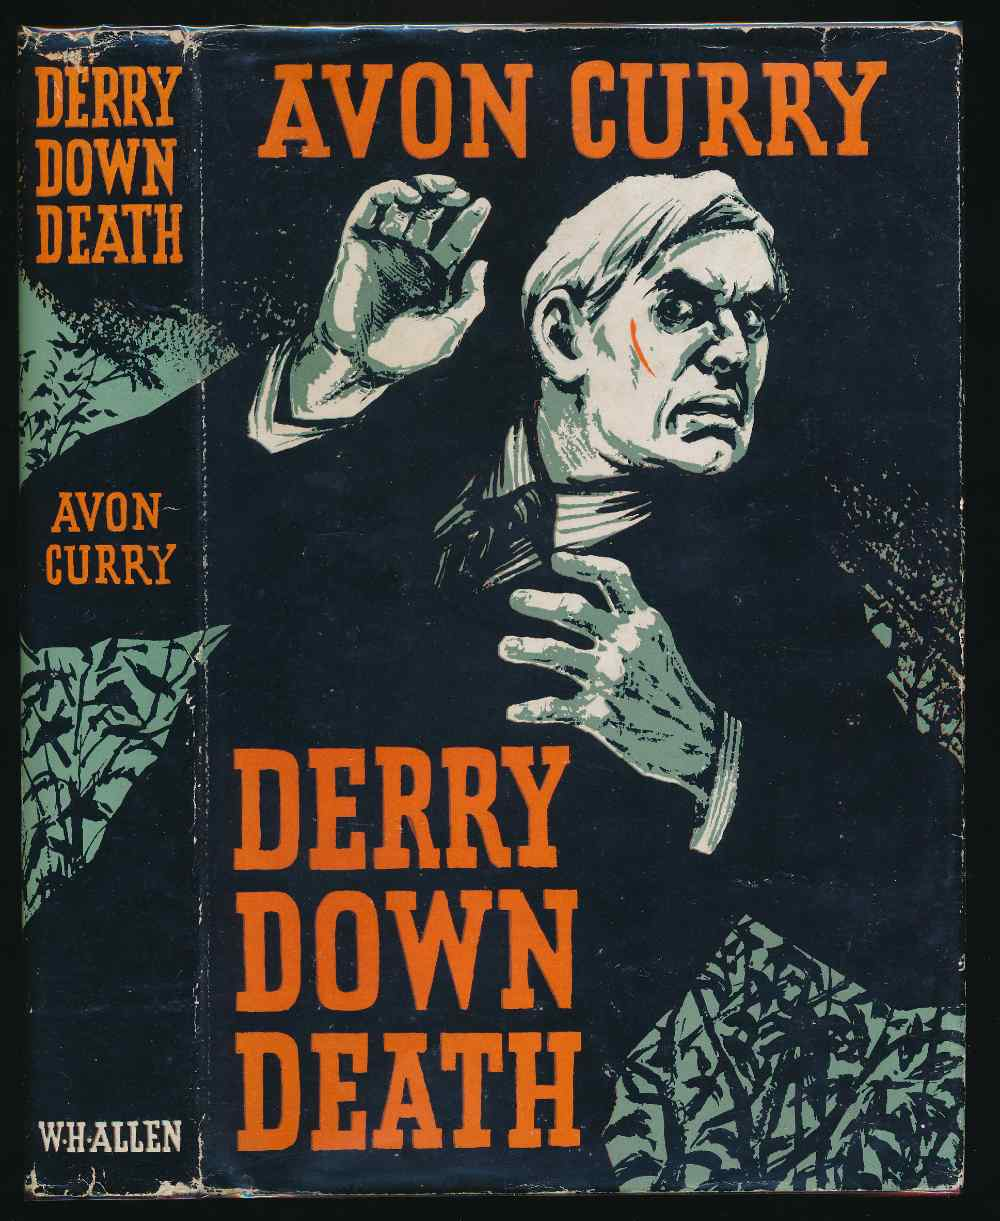 Derry down death